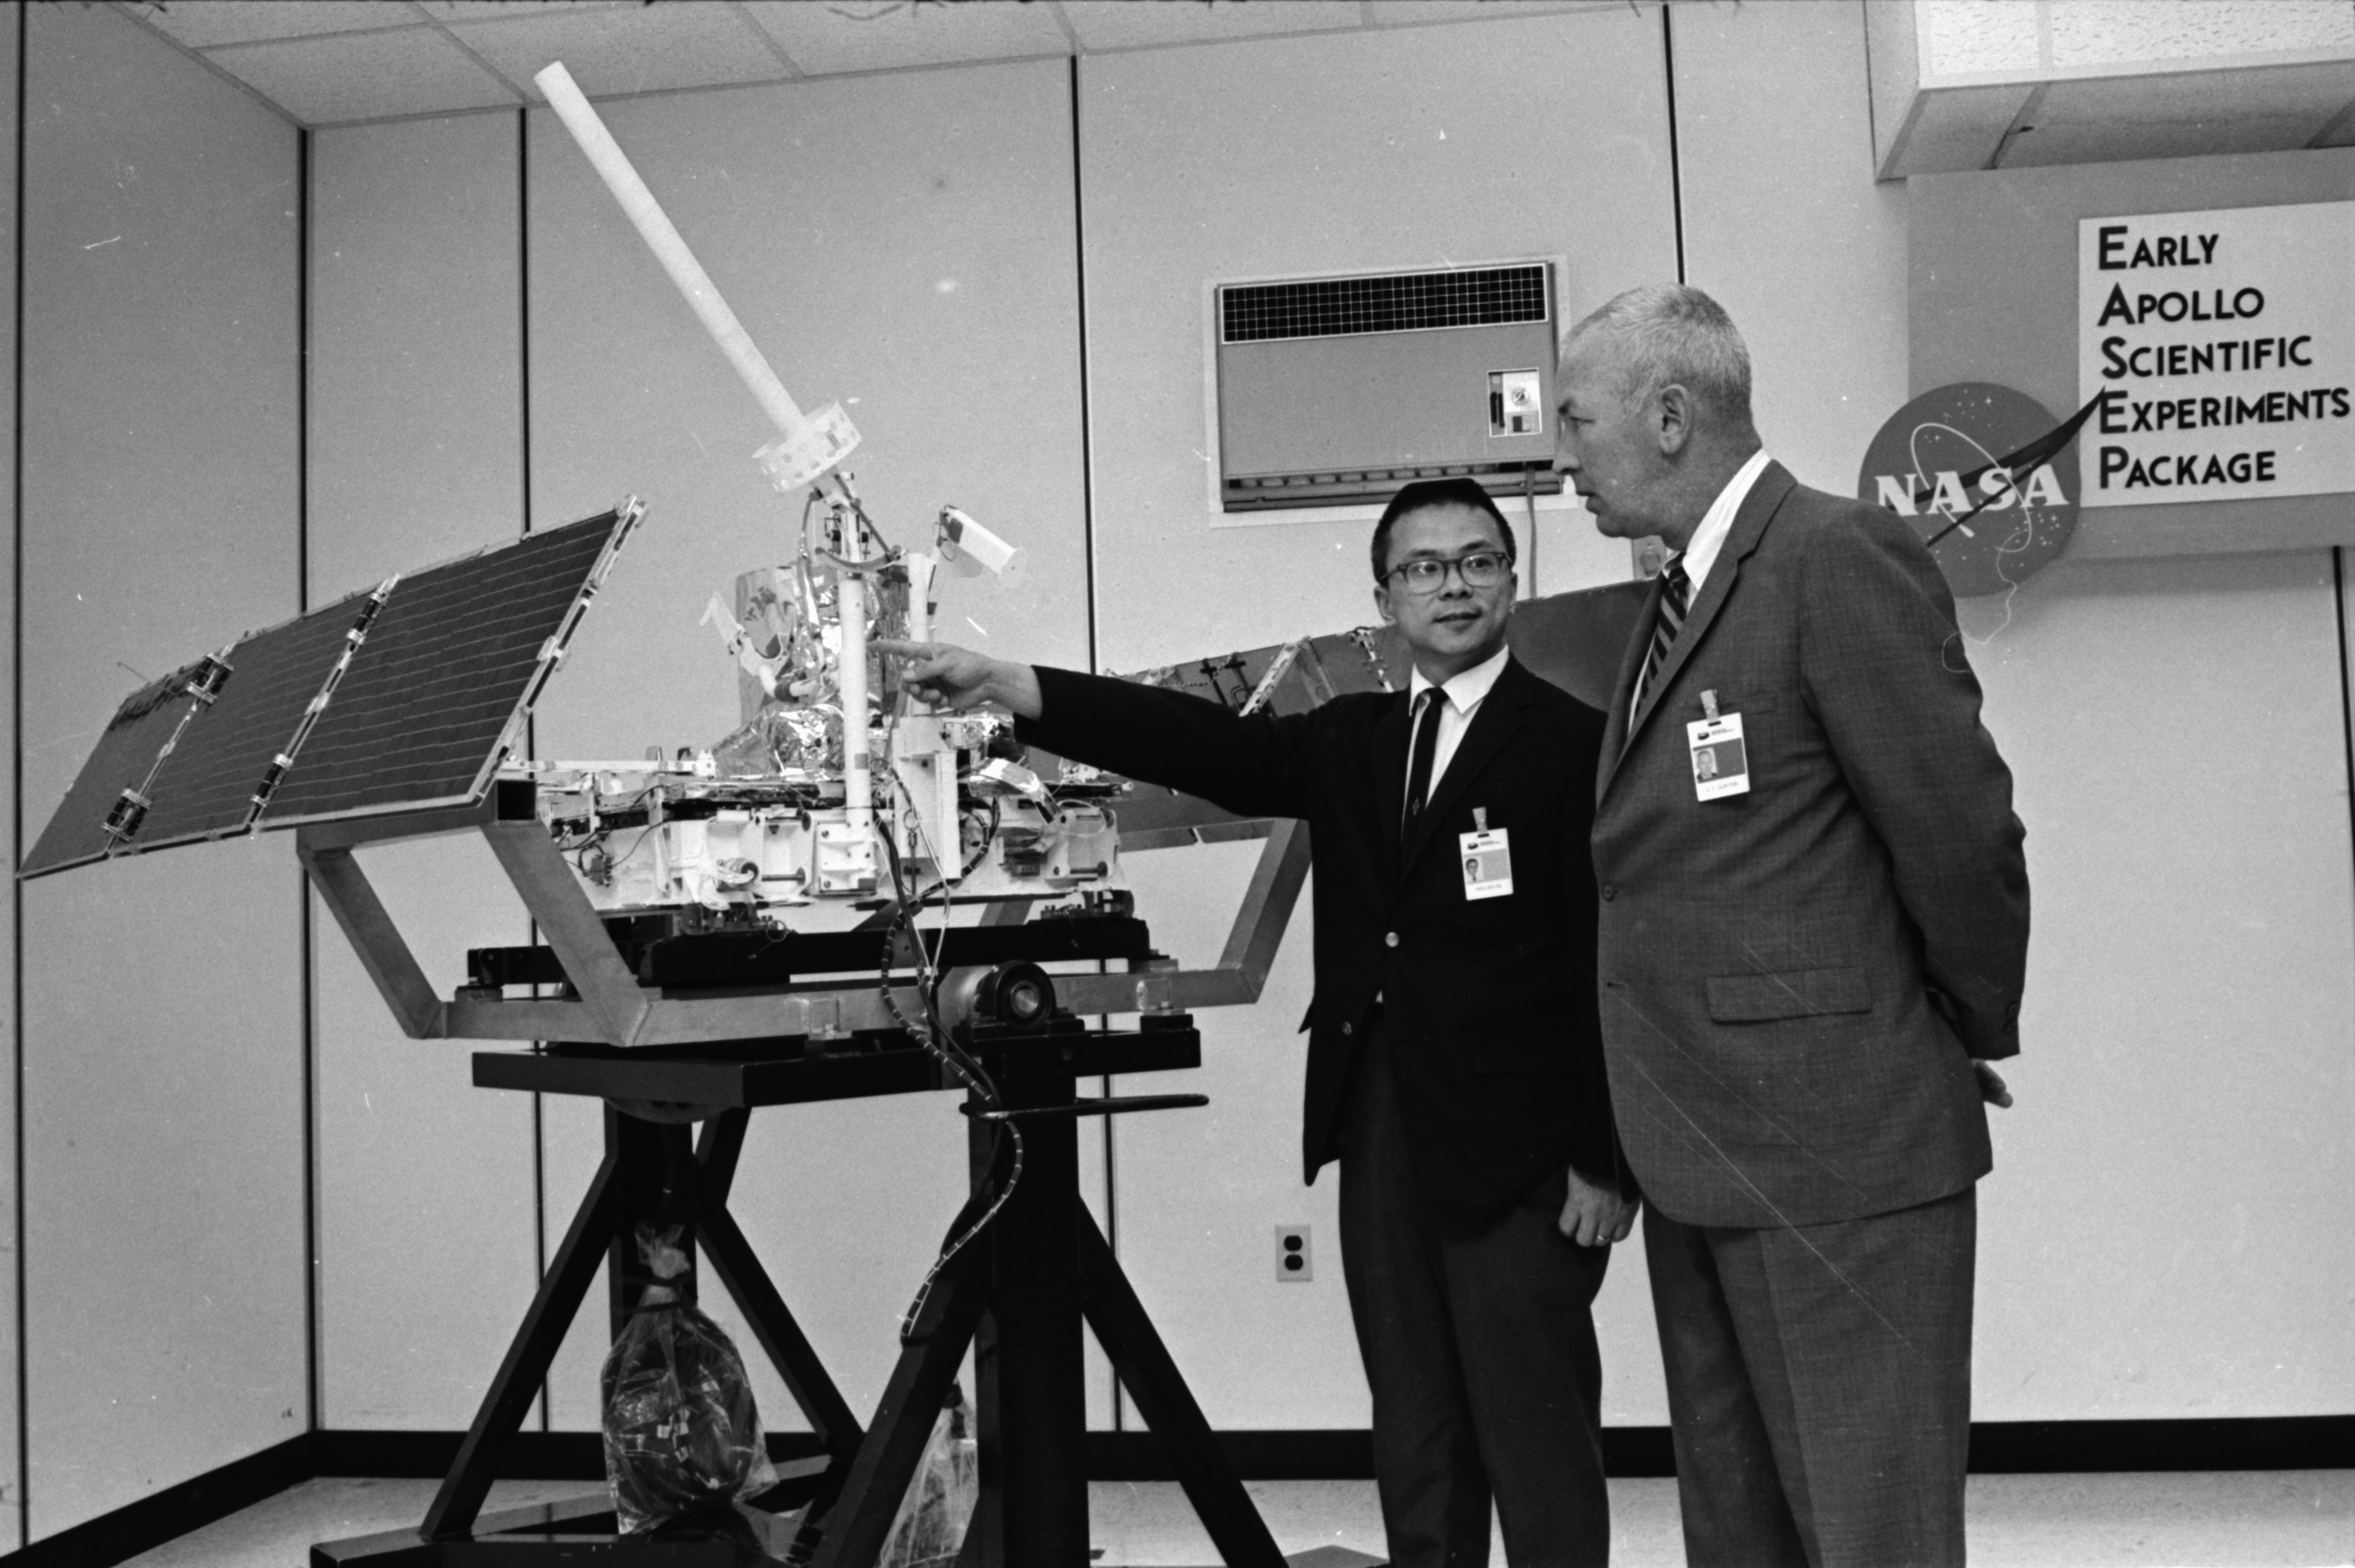 Hwei-Kai Hsi demonstrates features of an experimental Bendix package that will be delivered to the moon, April 1969 image